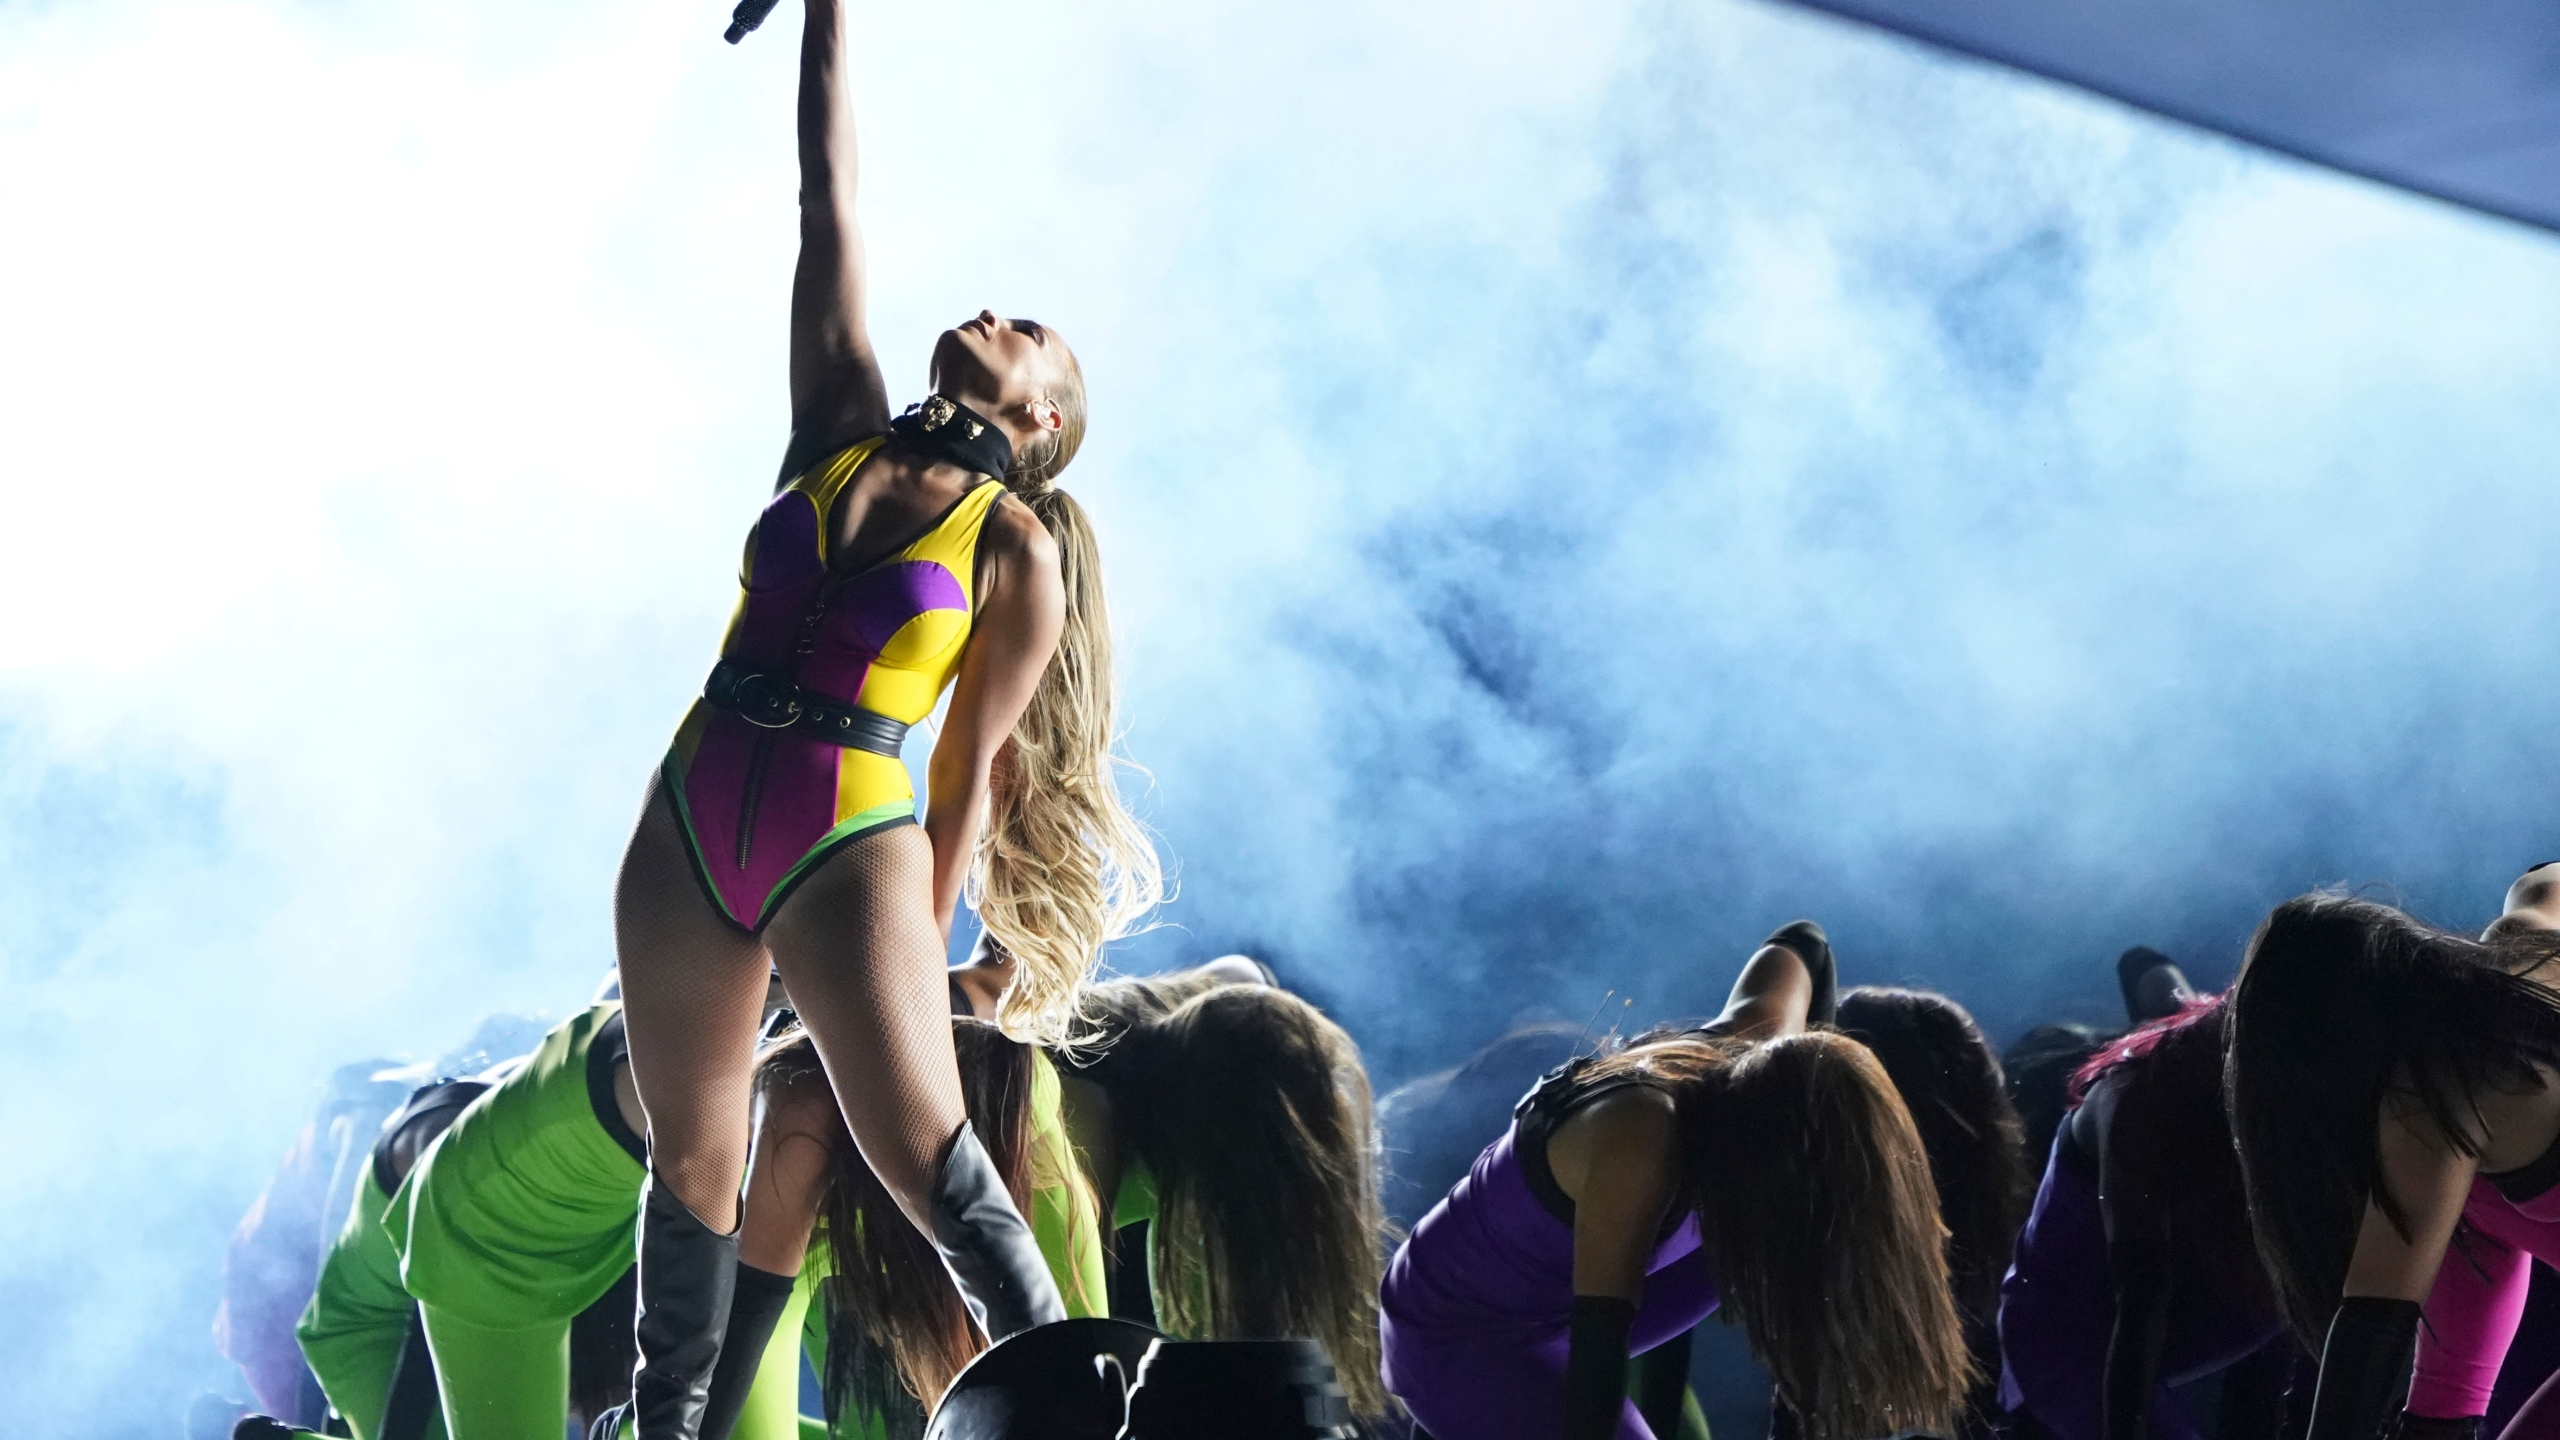 """Jennifer Lopez performs at """"Vax Live: The Concert to Reunite the World"""" on Sunday, May 2, 2021, at SoFi Stadium in Inglewood, Calif. (Photo by Jordan Strauss/Invision/AP)"""